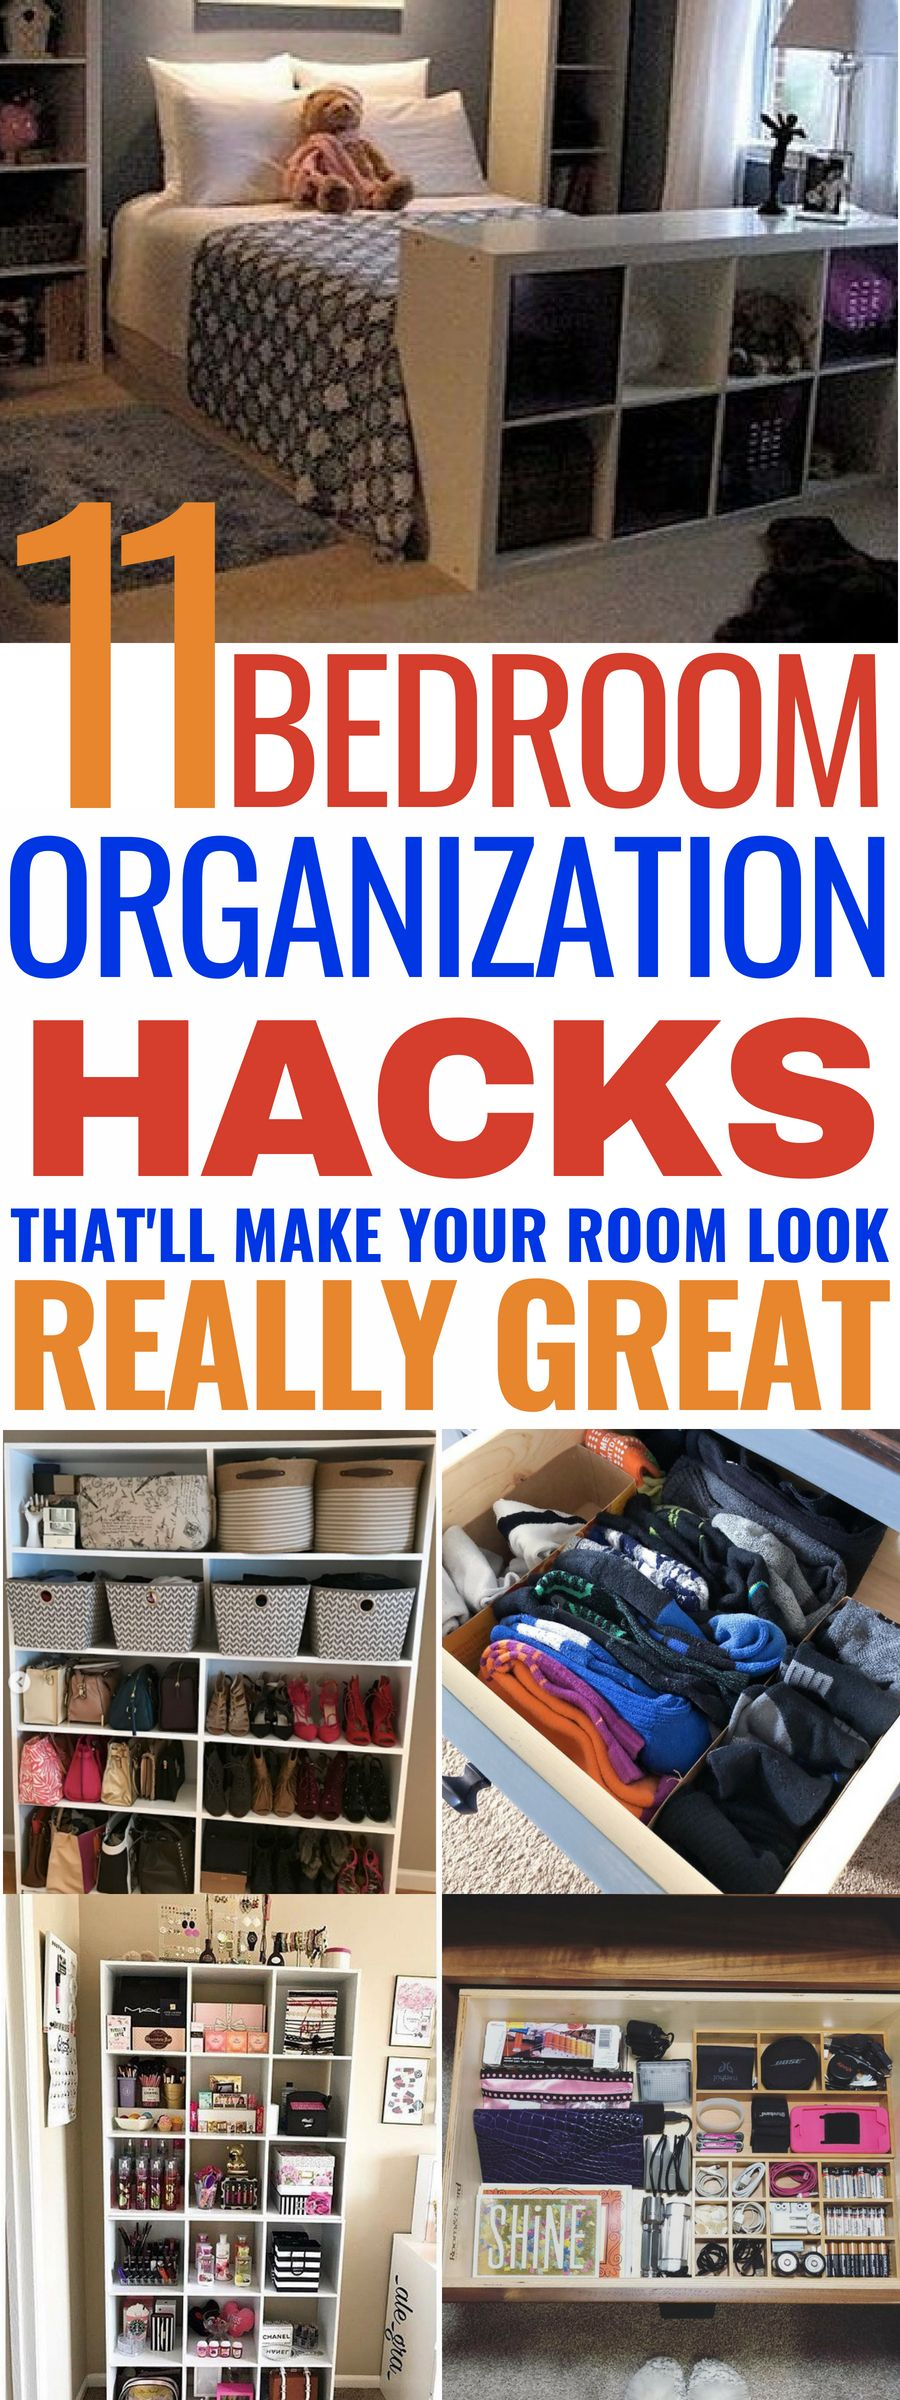 11 Genius Organization Hacks For Your Bedroom is part of Organization Bedroom Kids - This post may contain affiliate links  Please read my disclosure for more information Looking for some genius organization hacks for your bedroom  Then, these 11 ideas will be worth having a look at  They're perfect for helping you make your bedroom super organised, functional and stylish  So, if you want to …